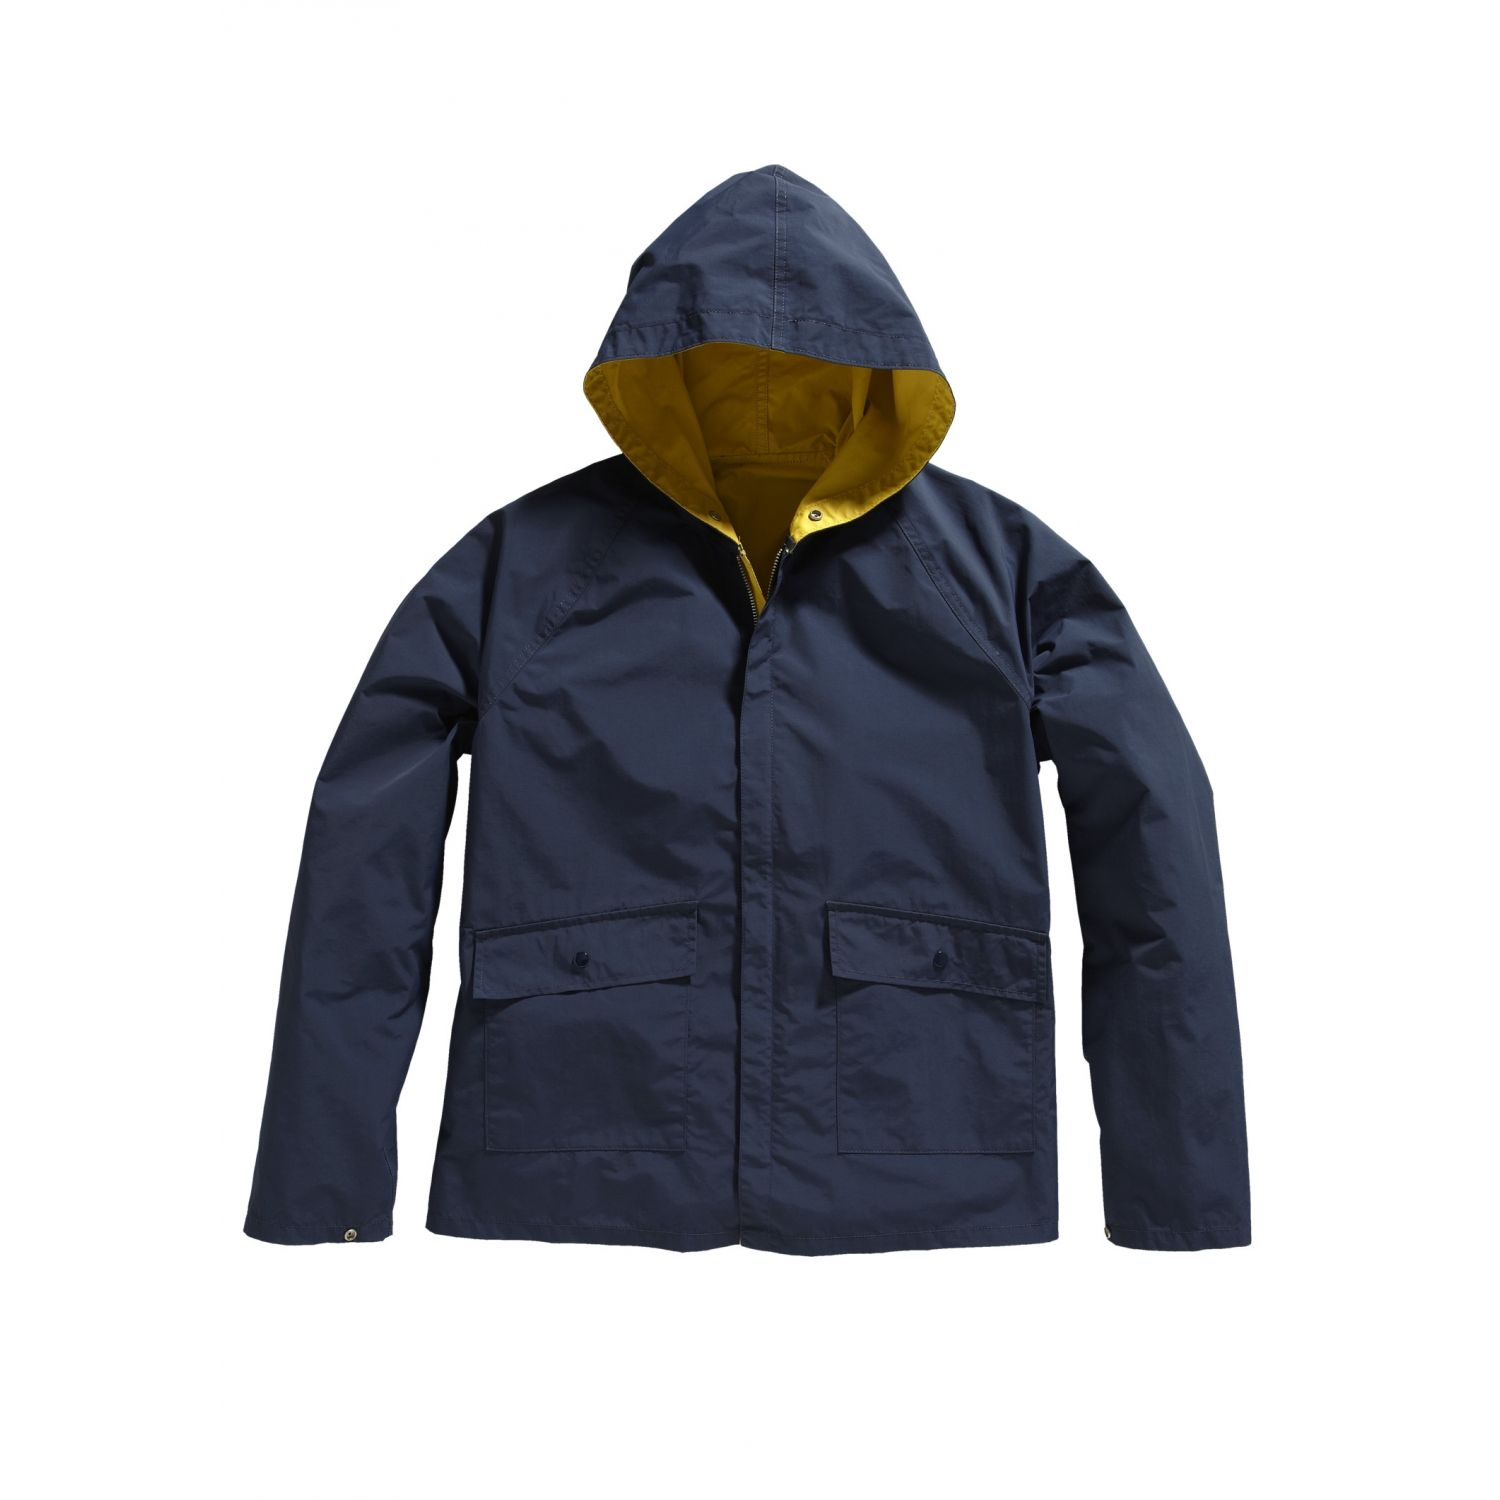 14f51192f My raincoat. Waiting to snag another one for the future if they get ...